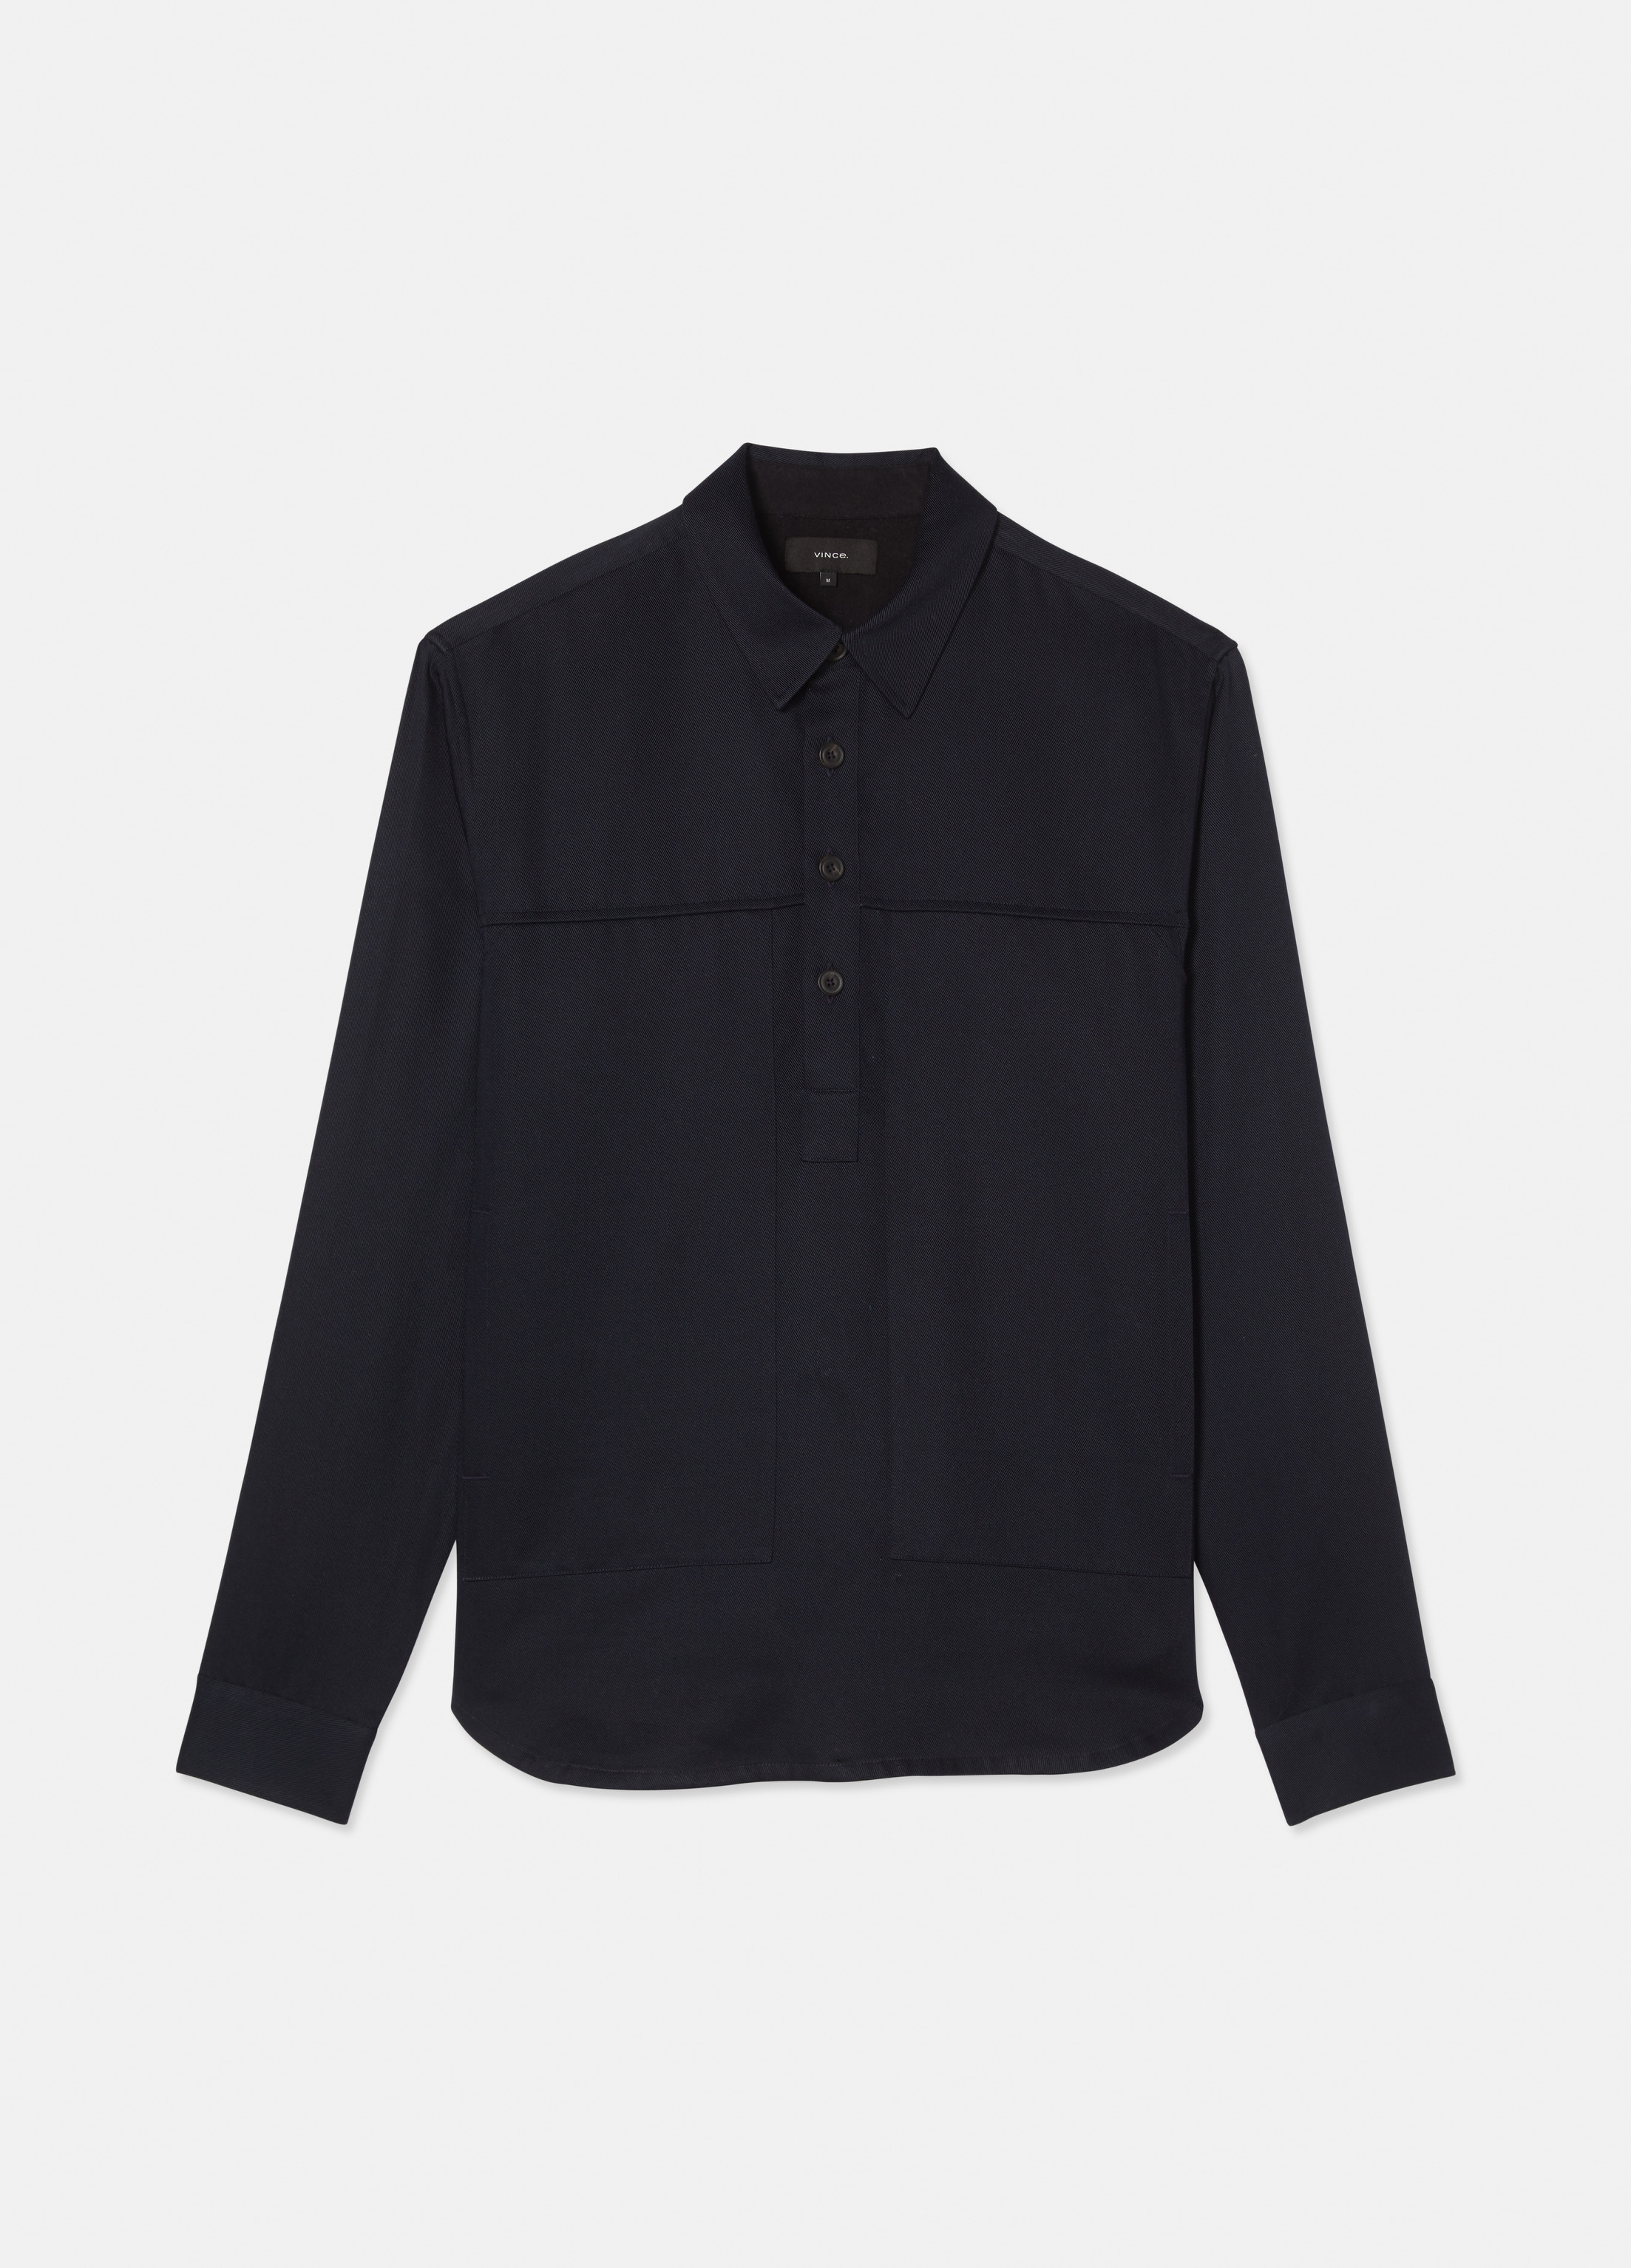 Vince cotton twill pullover